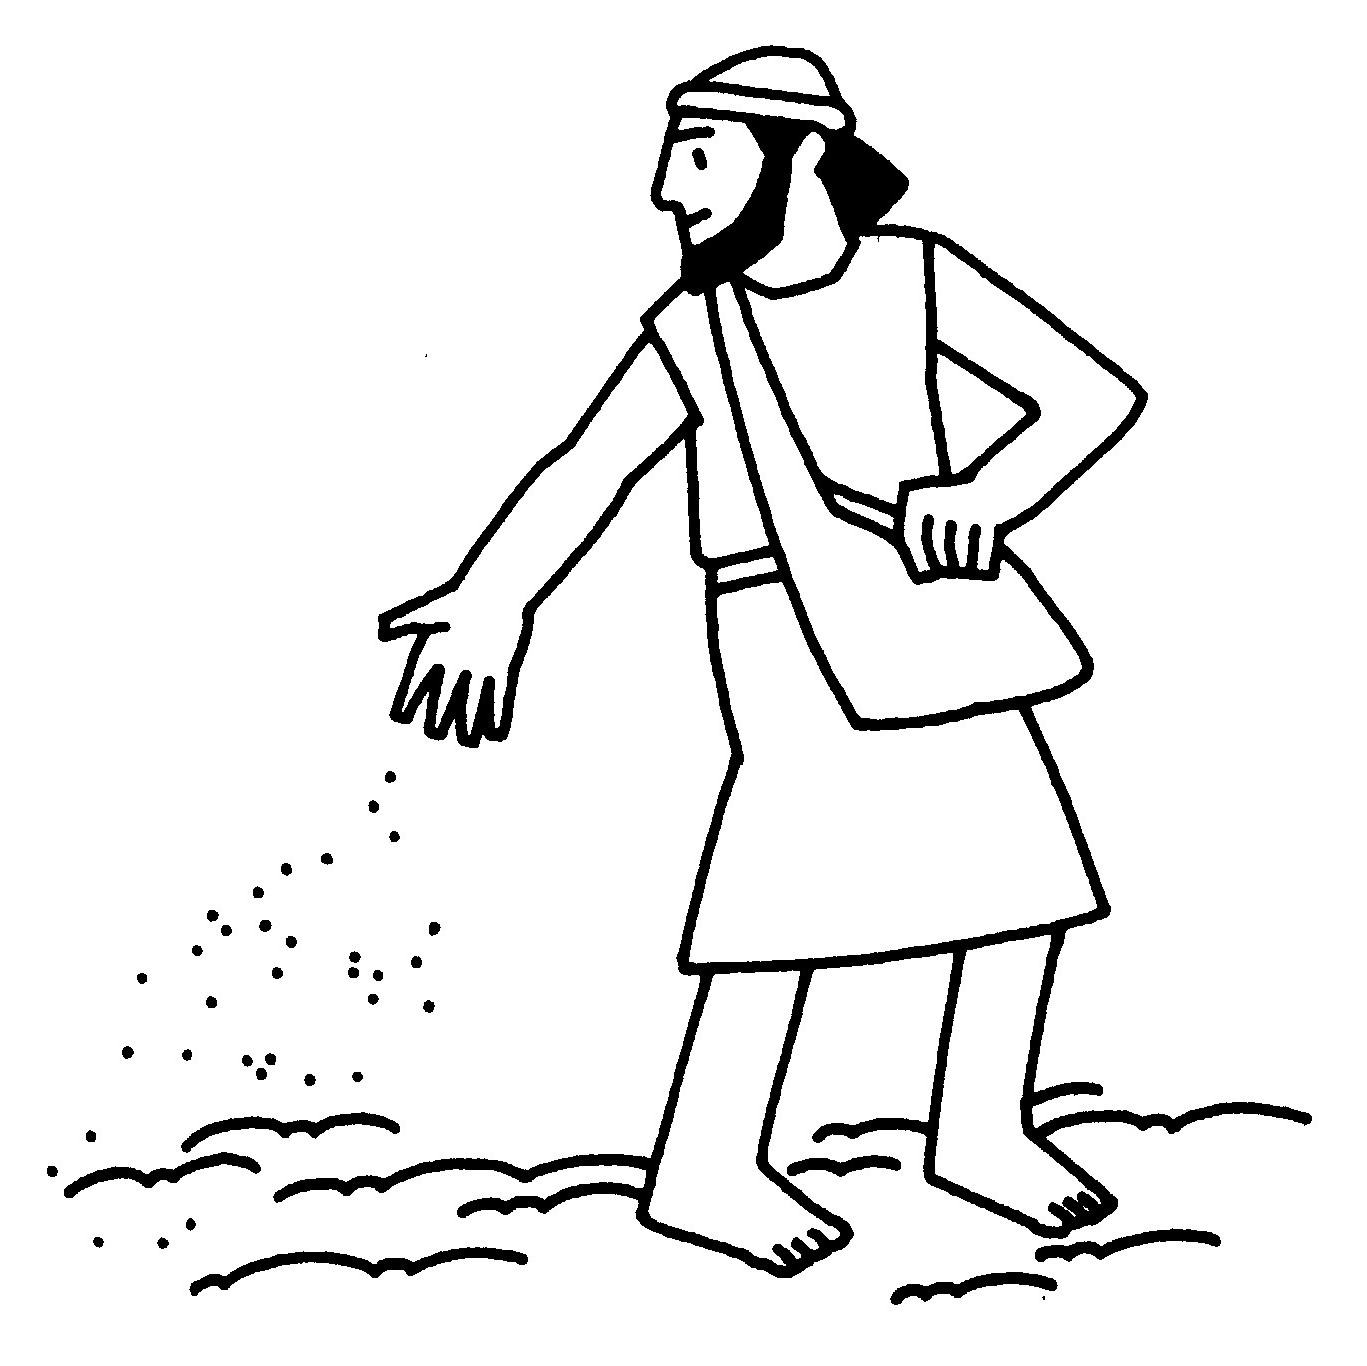 Parables coloring pages, Jesus' parables coloring pages